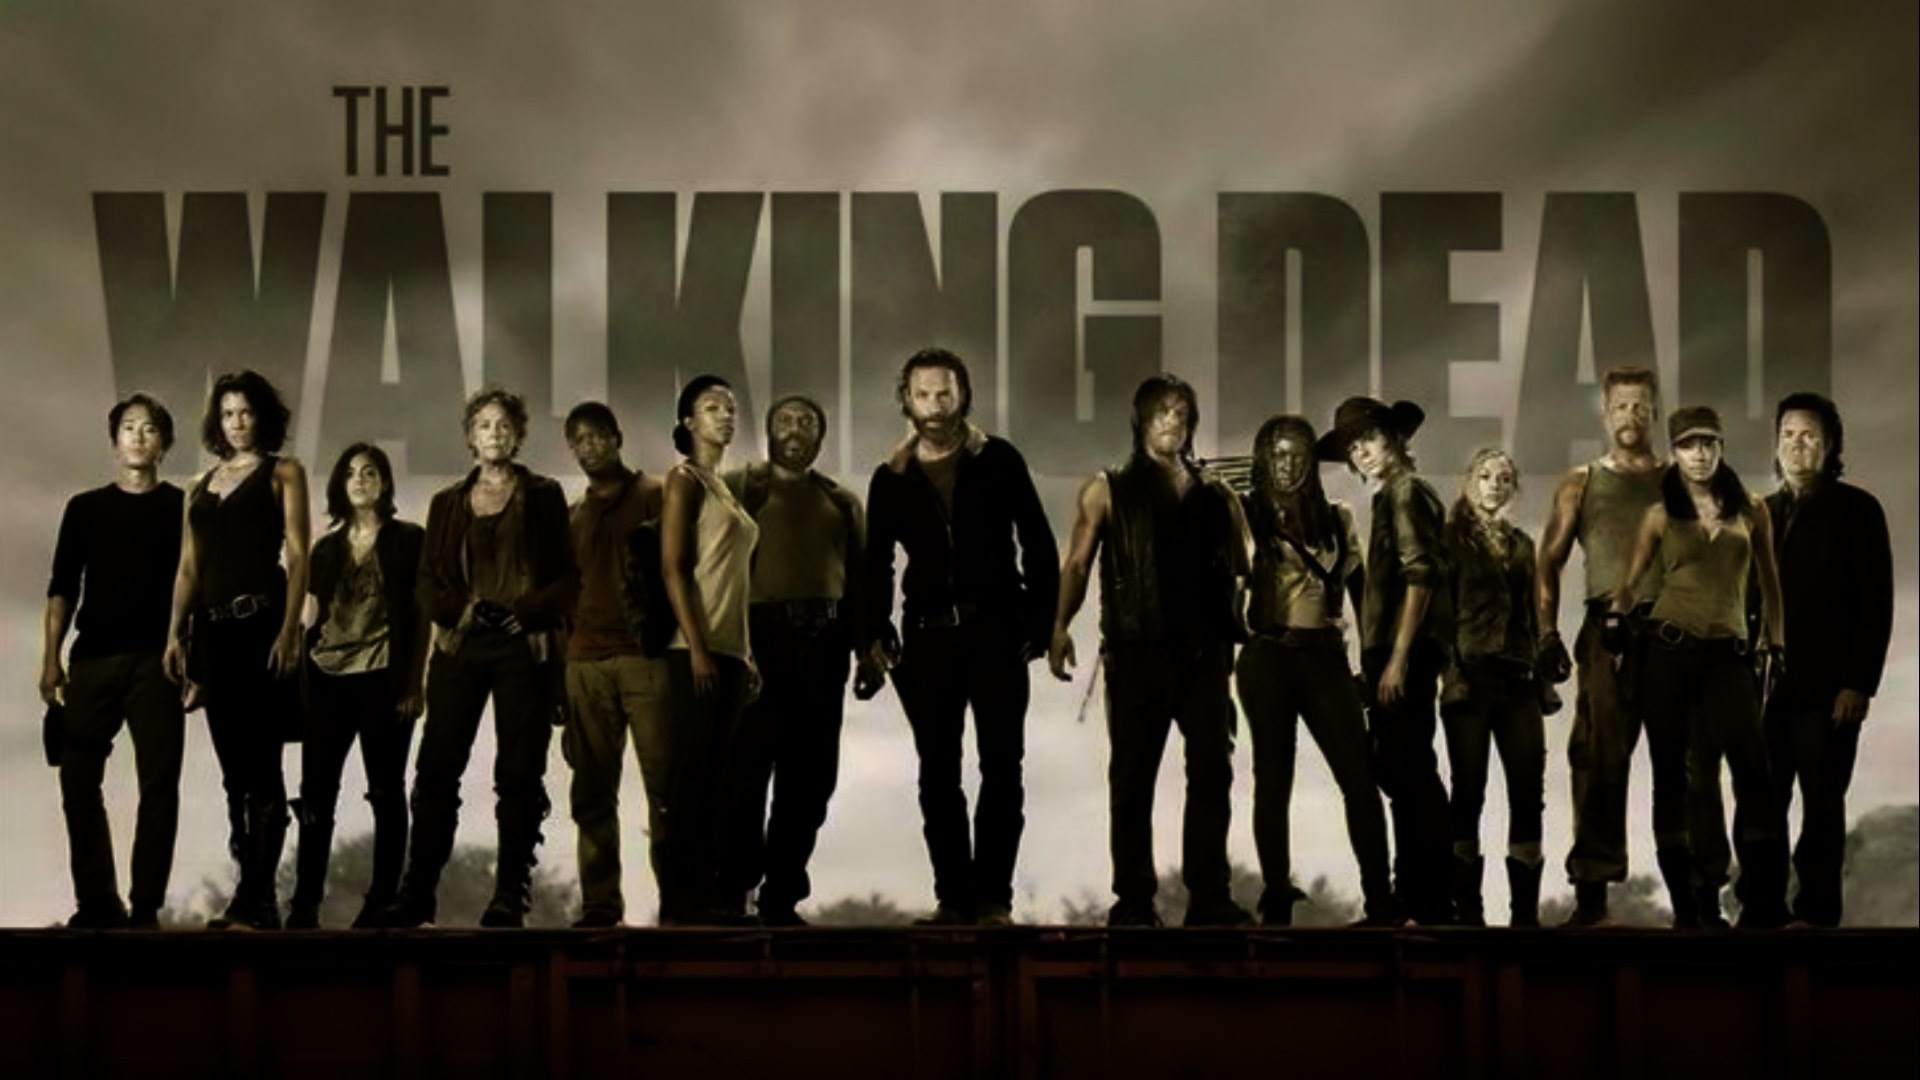 The Walking Dead Wallpaper 1366x768 55 Images